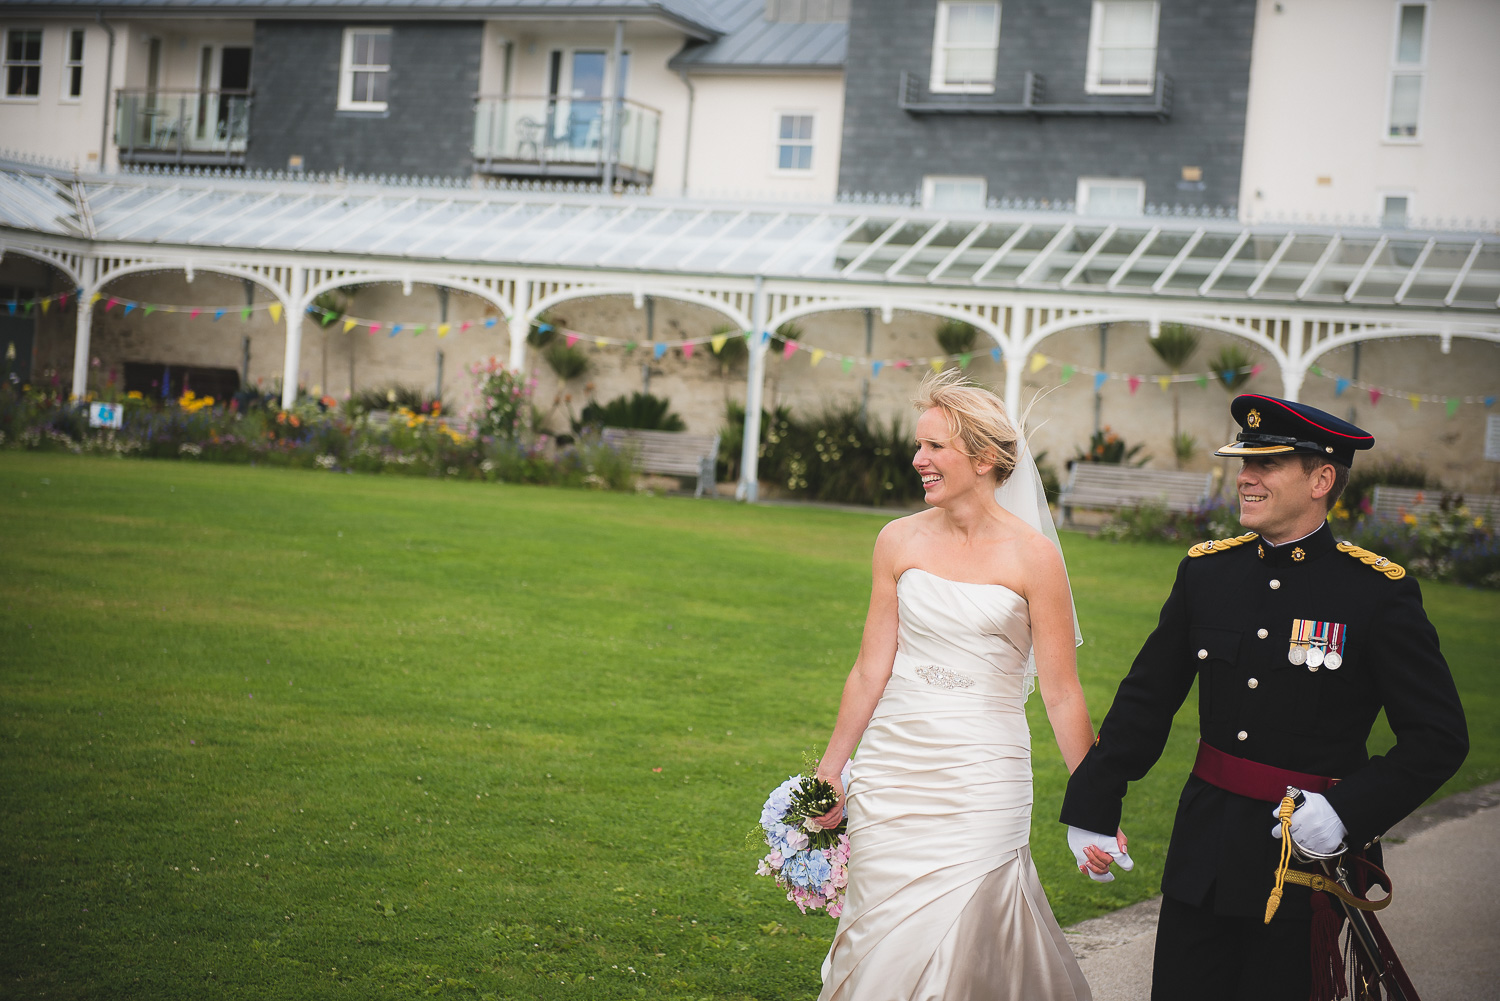 princess-pavilion-falmouth-wedding-photographer-2.jpg